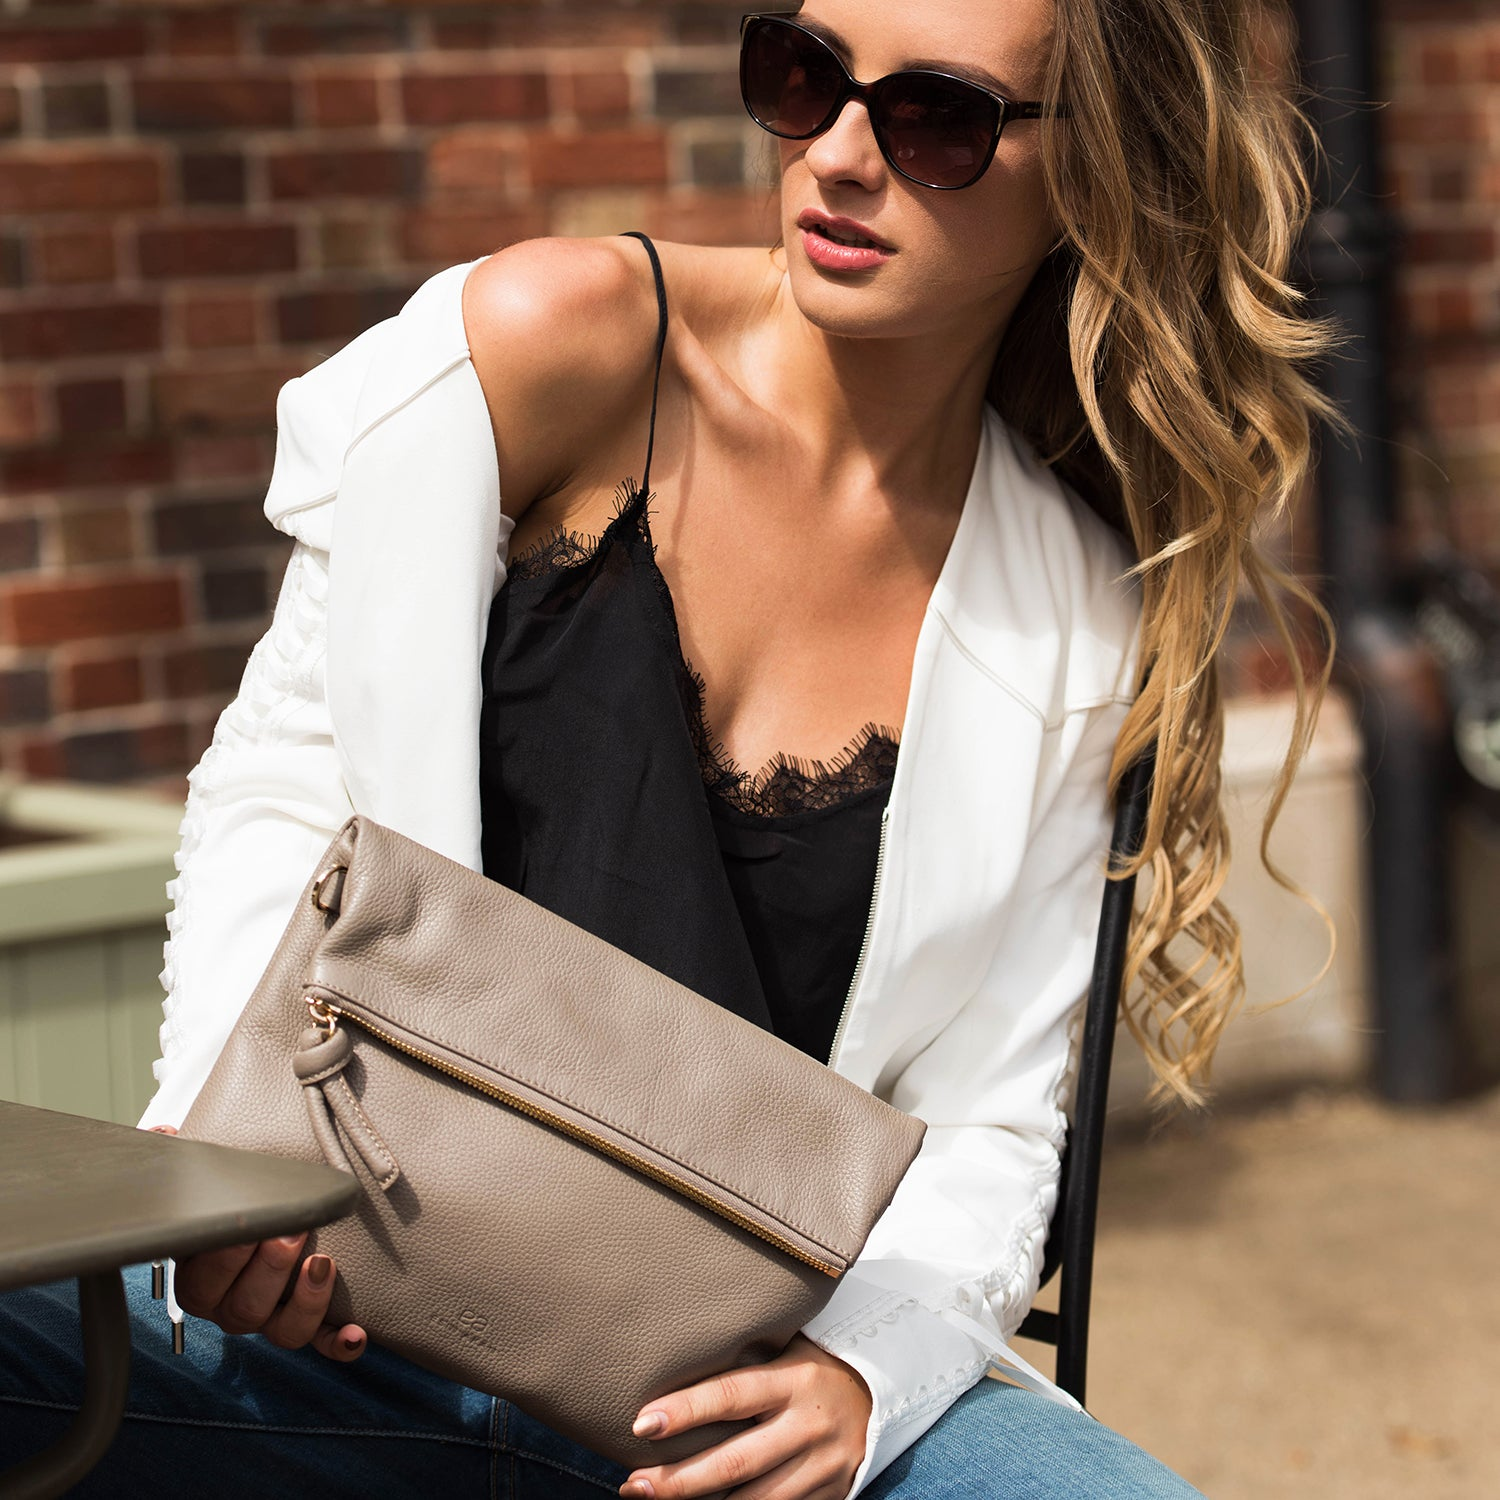 A model wearing nude convertible leather crossbody bag for women as an evening clutch.